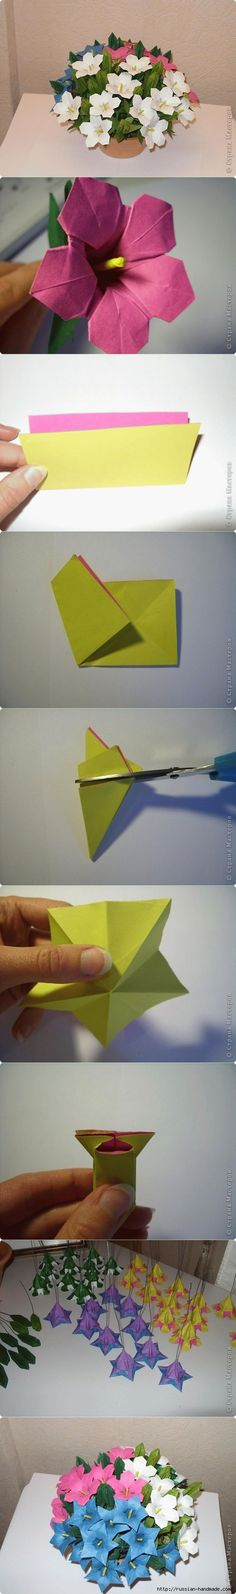 DIY Beautiful Paper Origami Lily Flower Bouquet